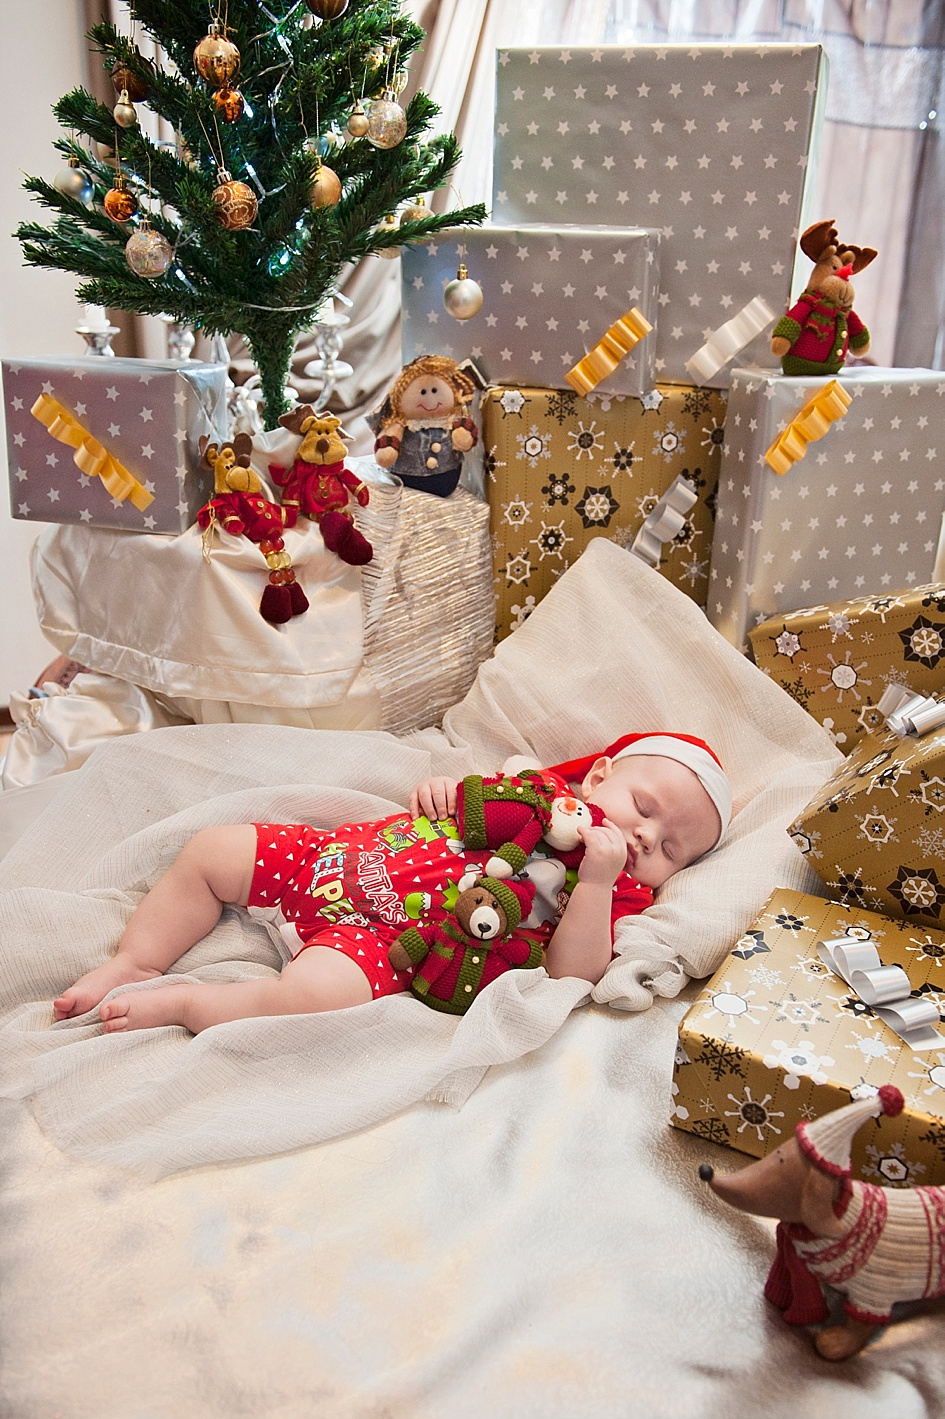 creative-festive-baby-shoot.jpg